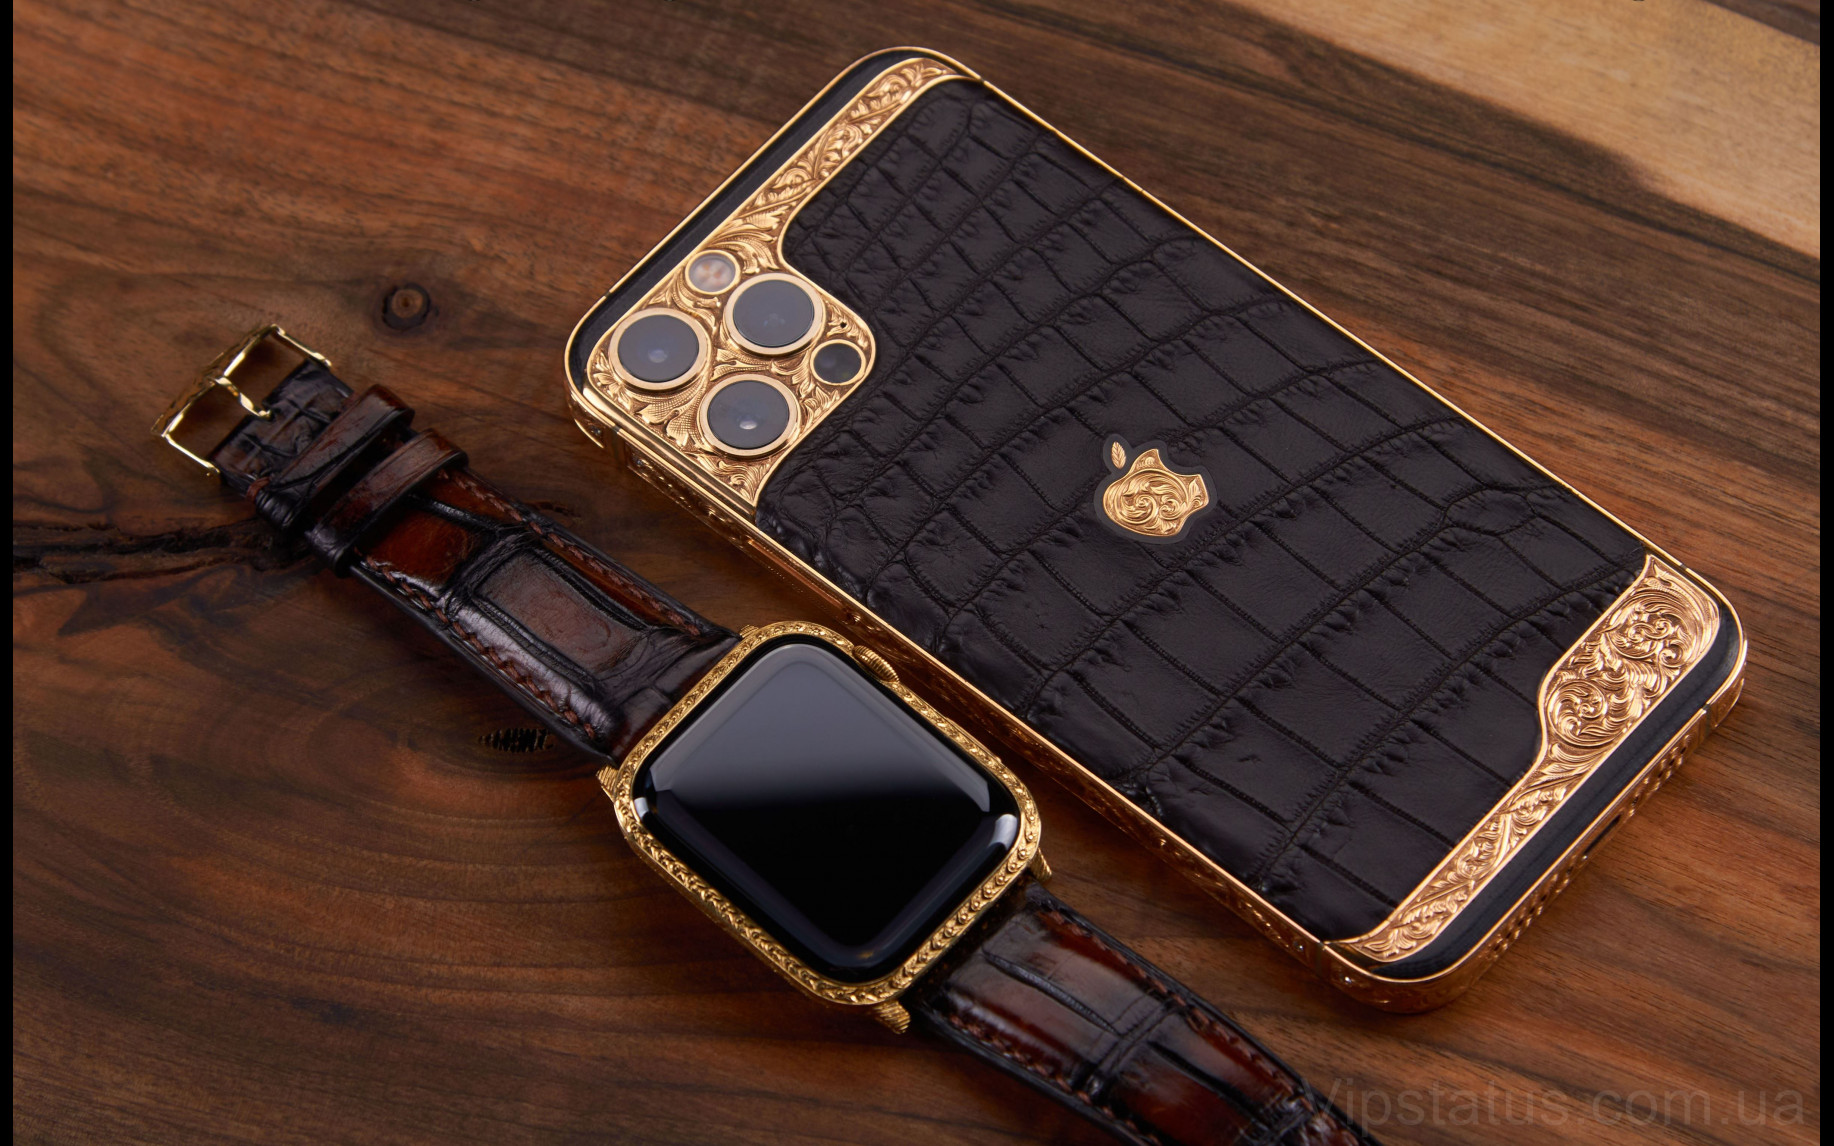 Elite Gold Aristocrate Apple Watch 6 Gold Aristocrate Apple Watch 6 image 5